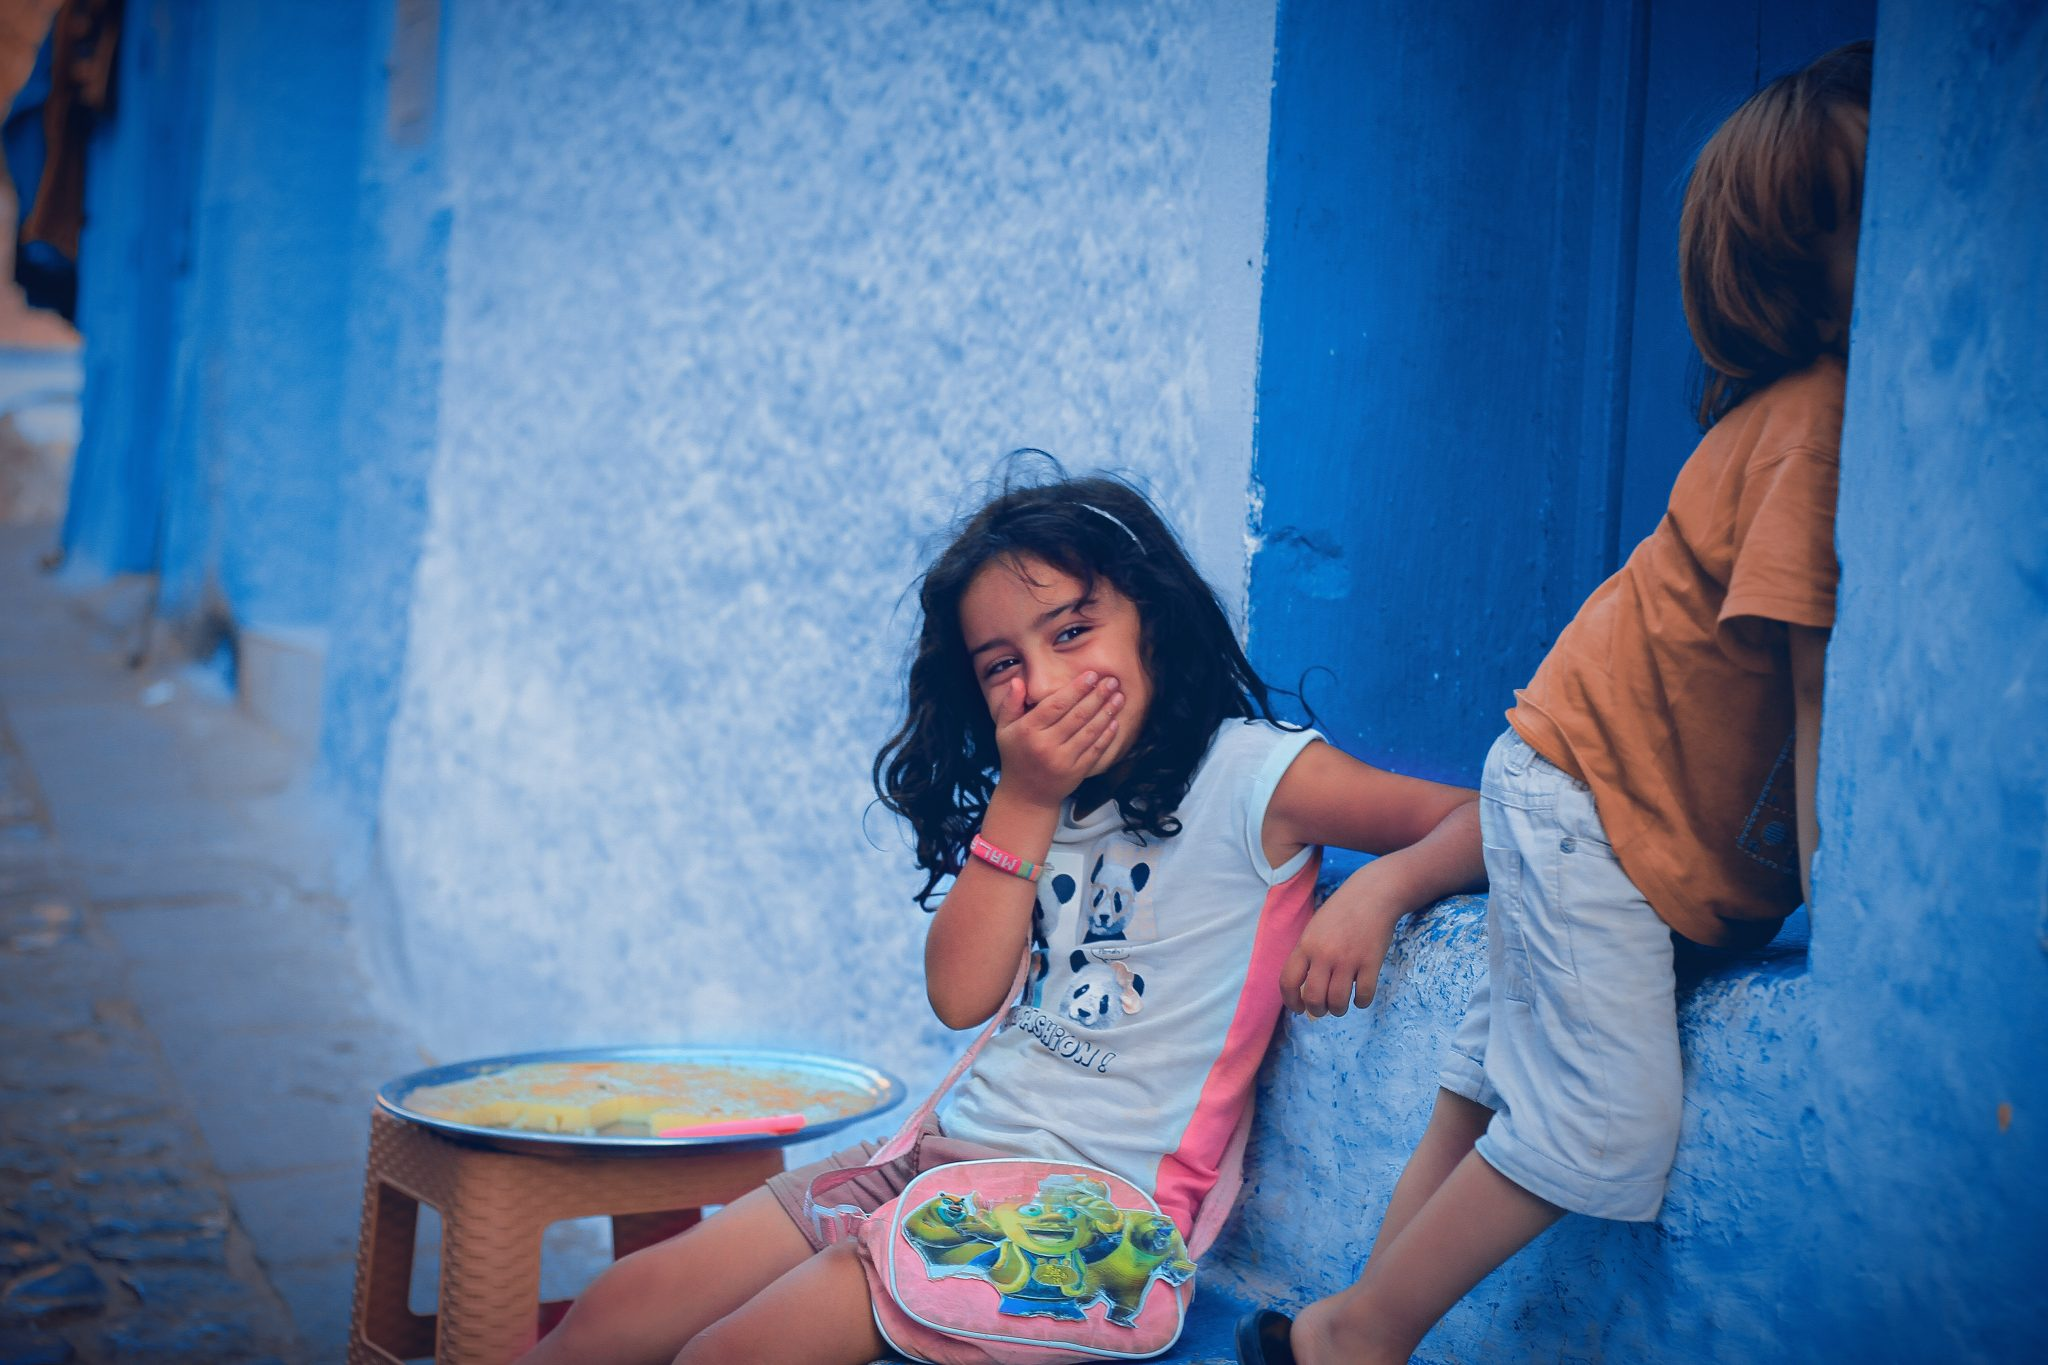 Morocco has rolled back child labour for the youngest – now, COVID-19 looms